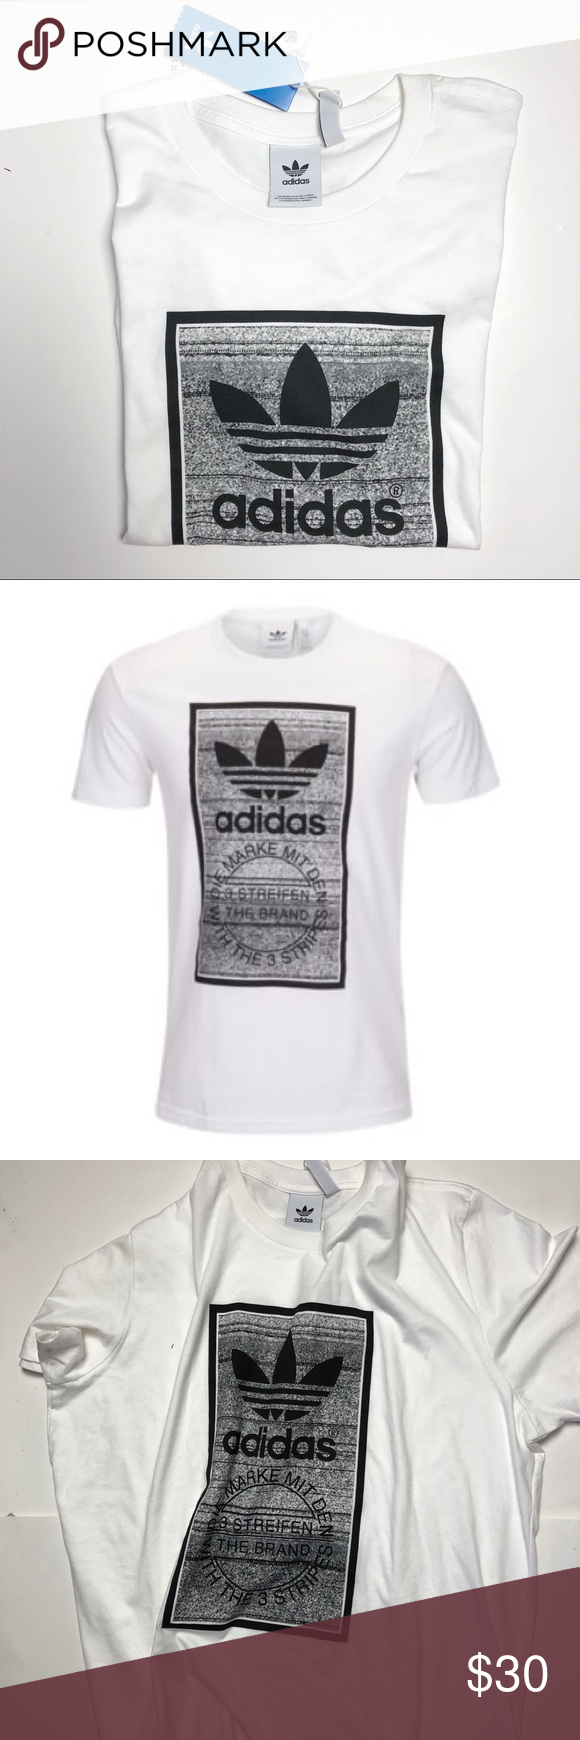 15b535f882f6 Men s adidas Originals Traction Tongue T-Shirt 2XL Sport some distinct  throwback style. The classic Trefoil on this t-shirt features a warped  pattern ...